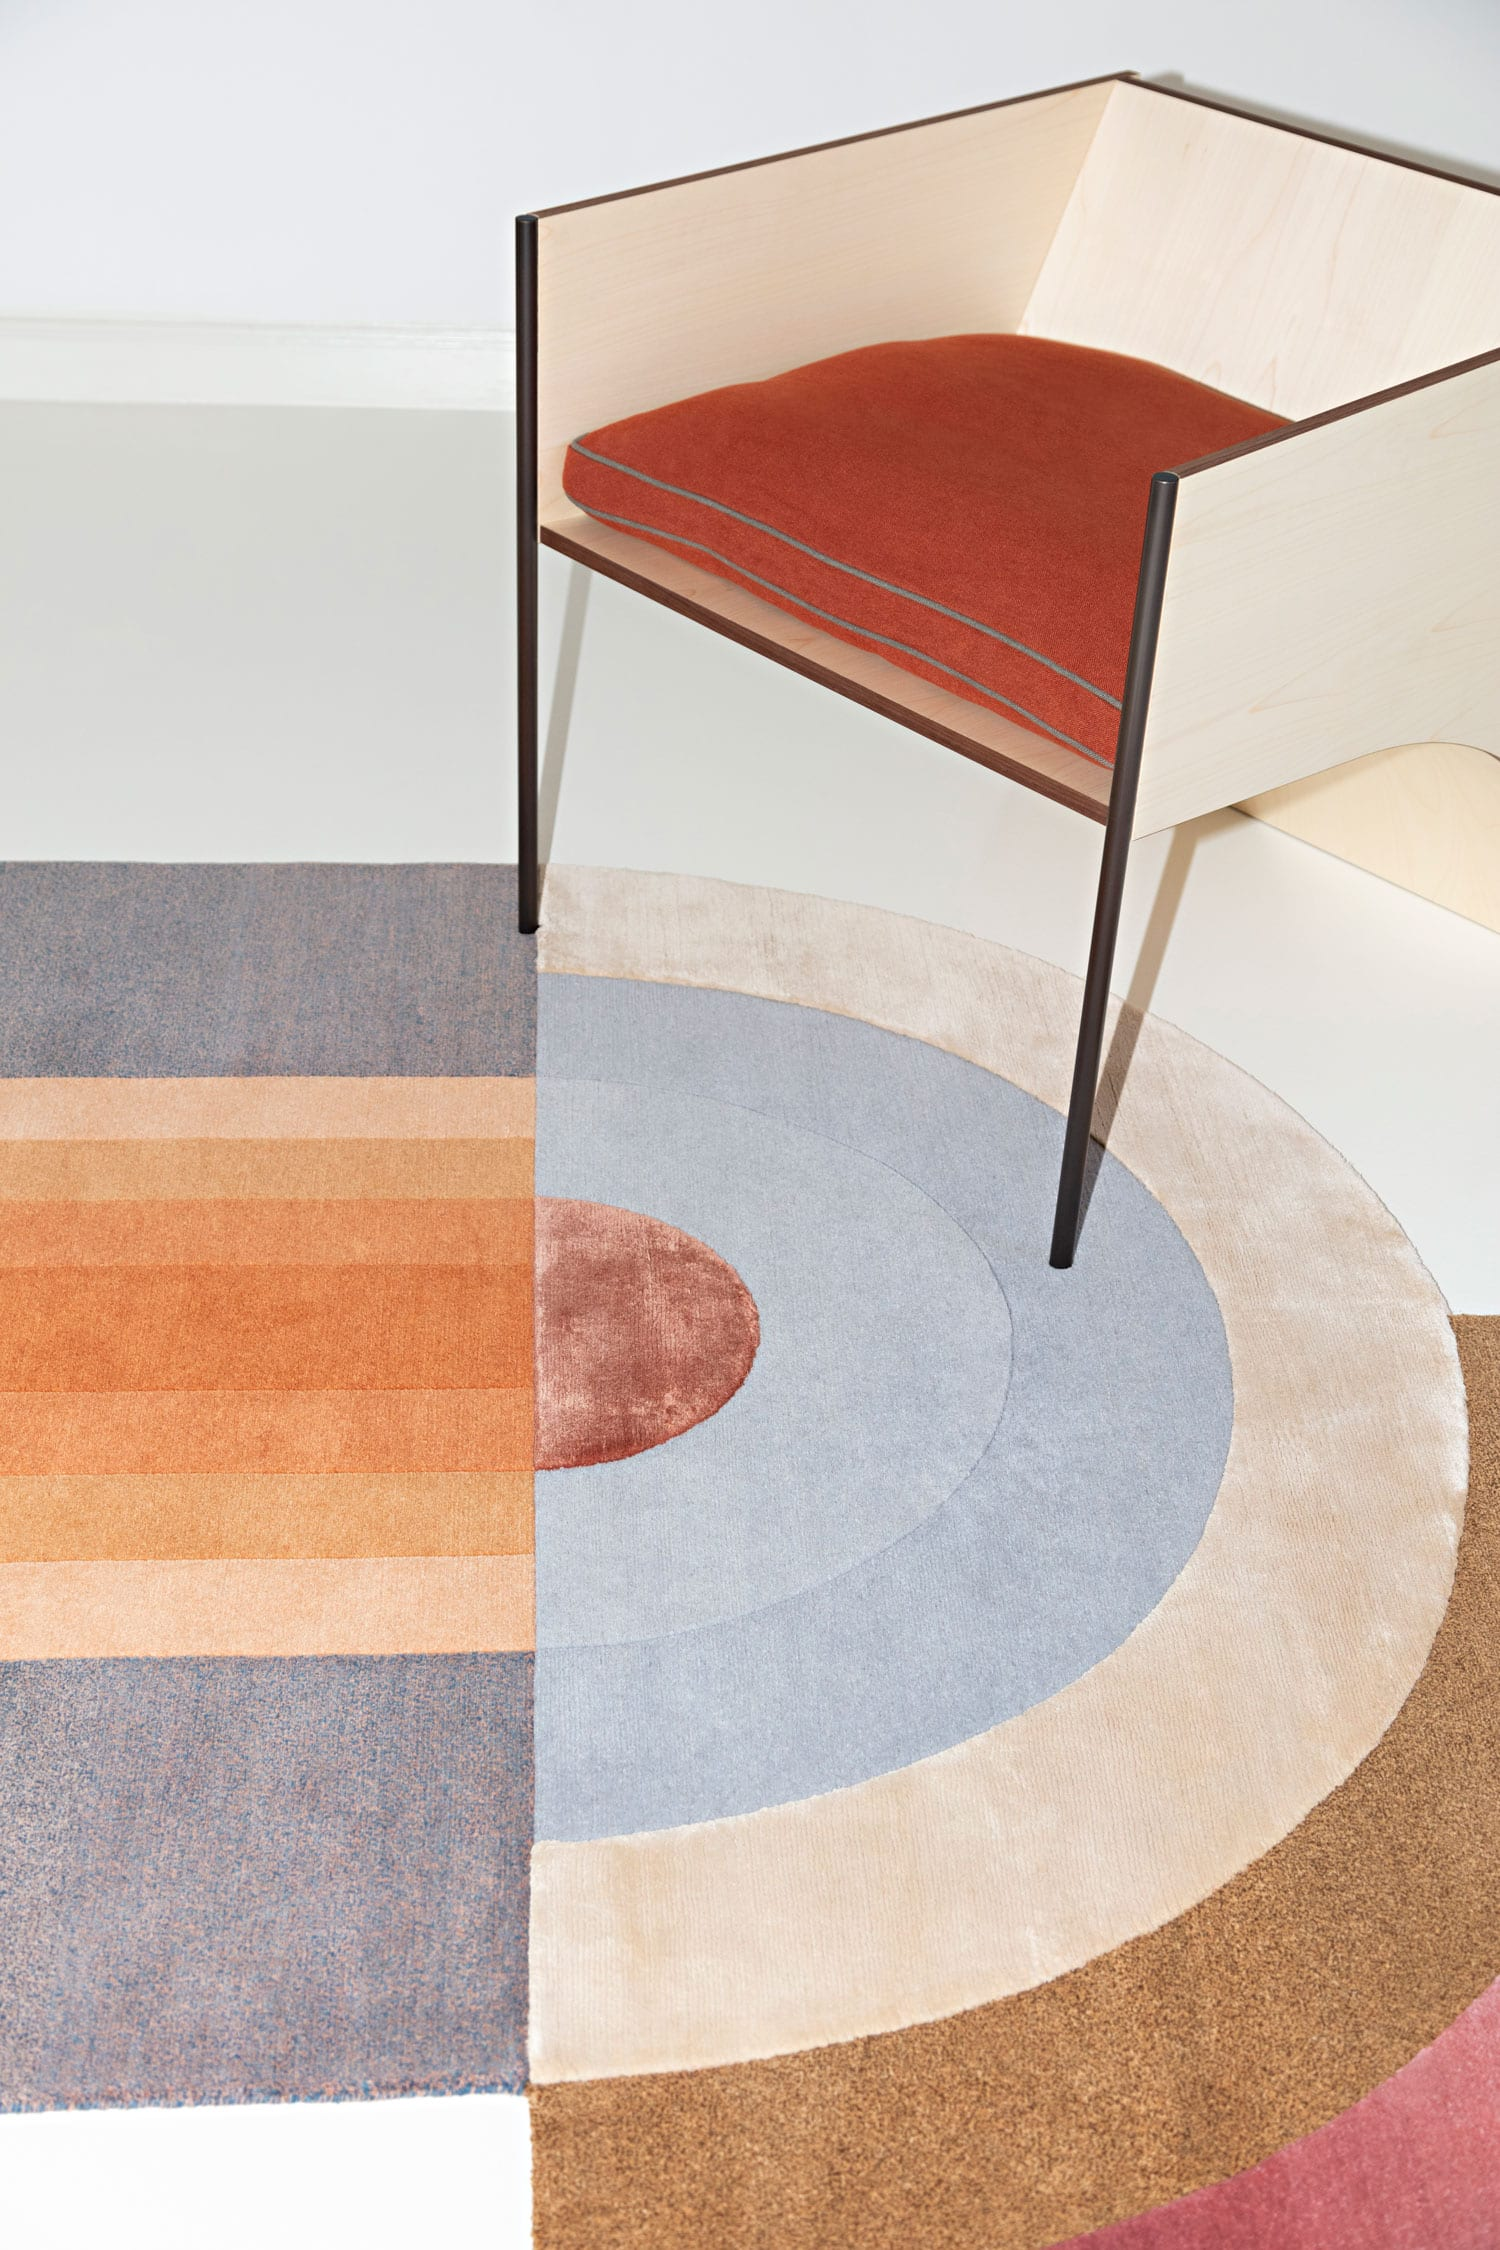 Bliss Big by Mae Engelgeer for CC Tapis Rugs   Yellowtrace